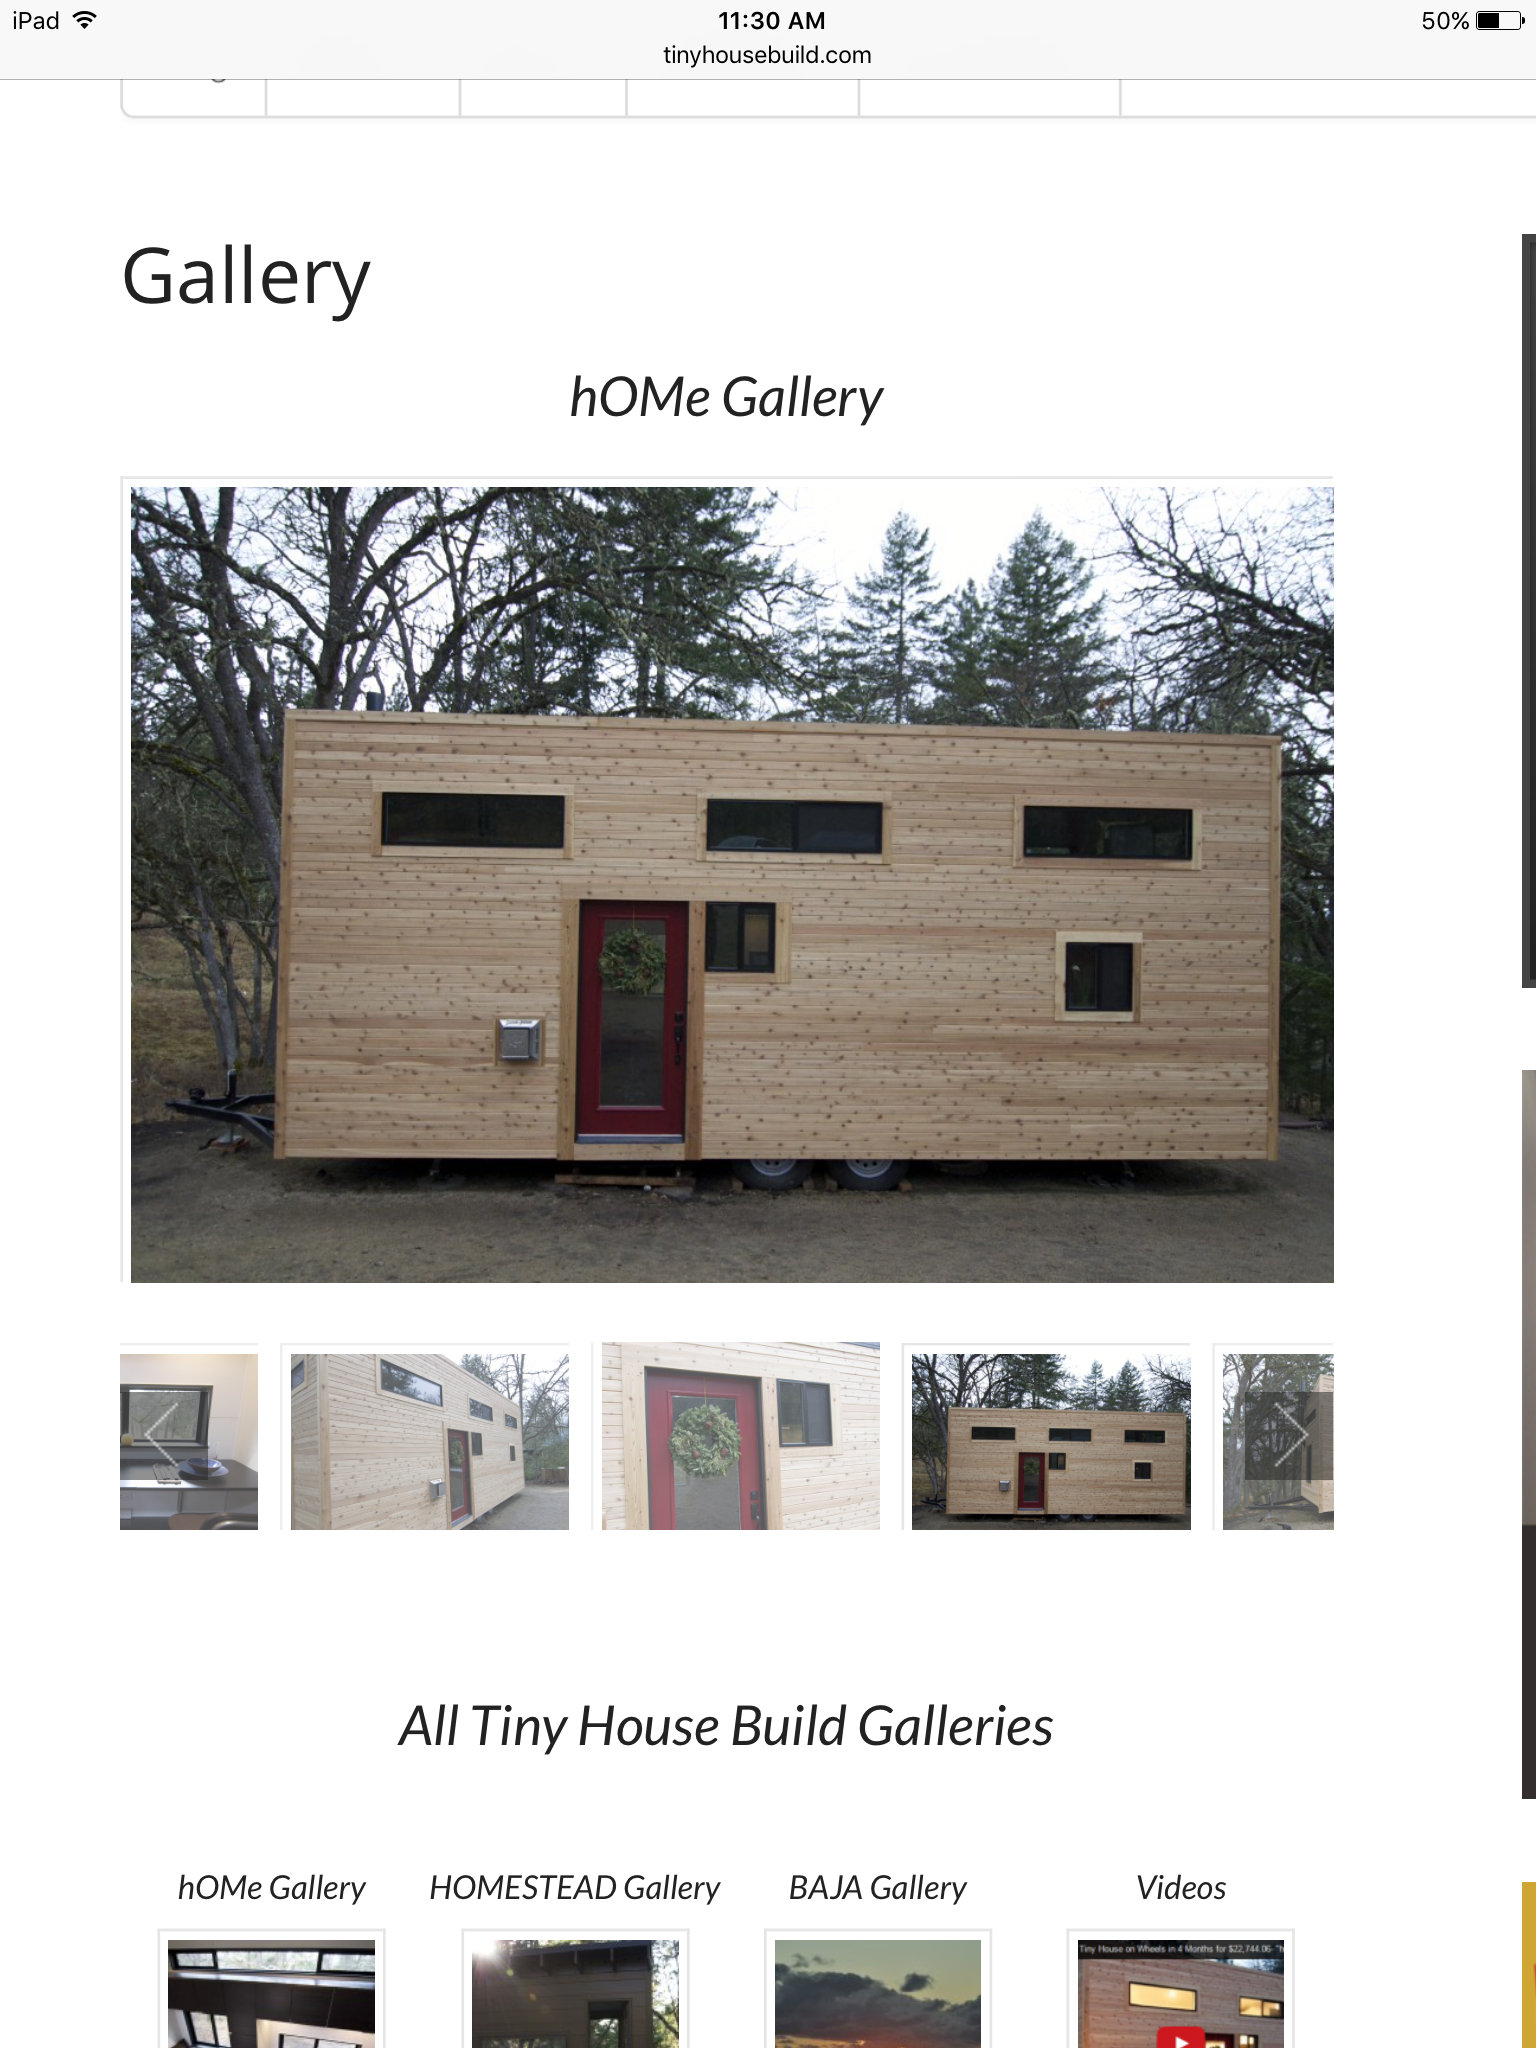 Pin by Dani Nelson on Tiny houses | Pinterest | Tiny houses and House